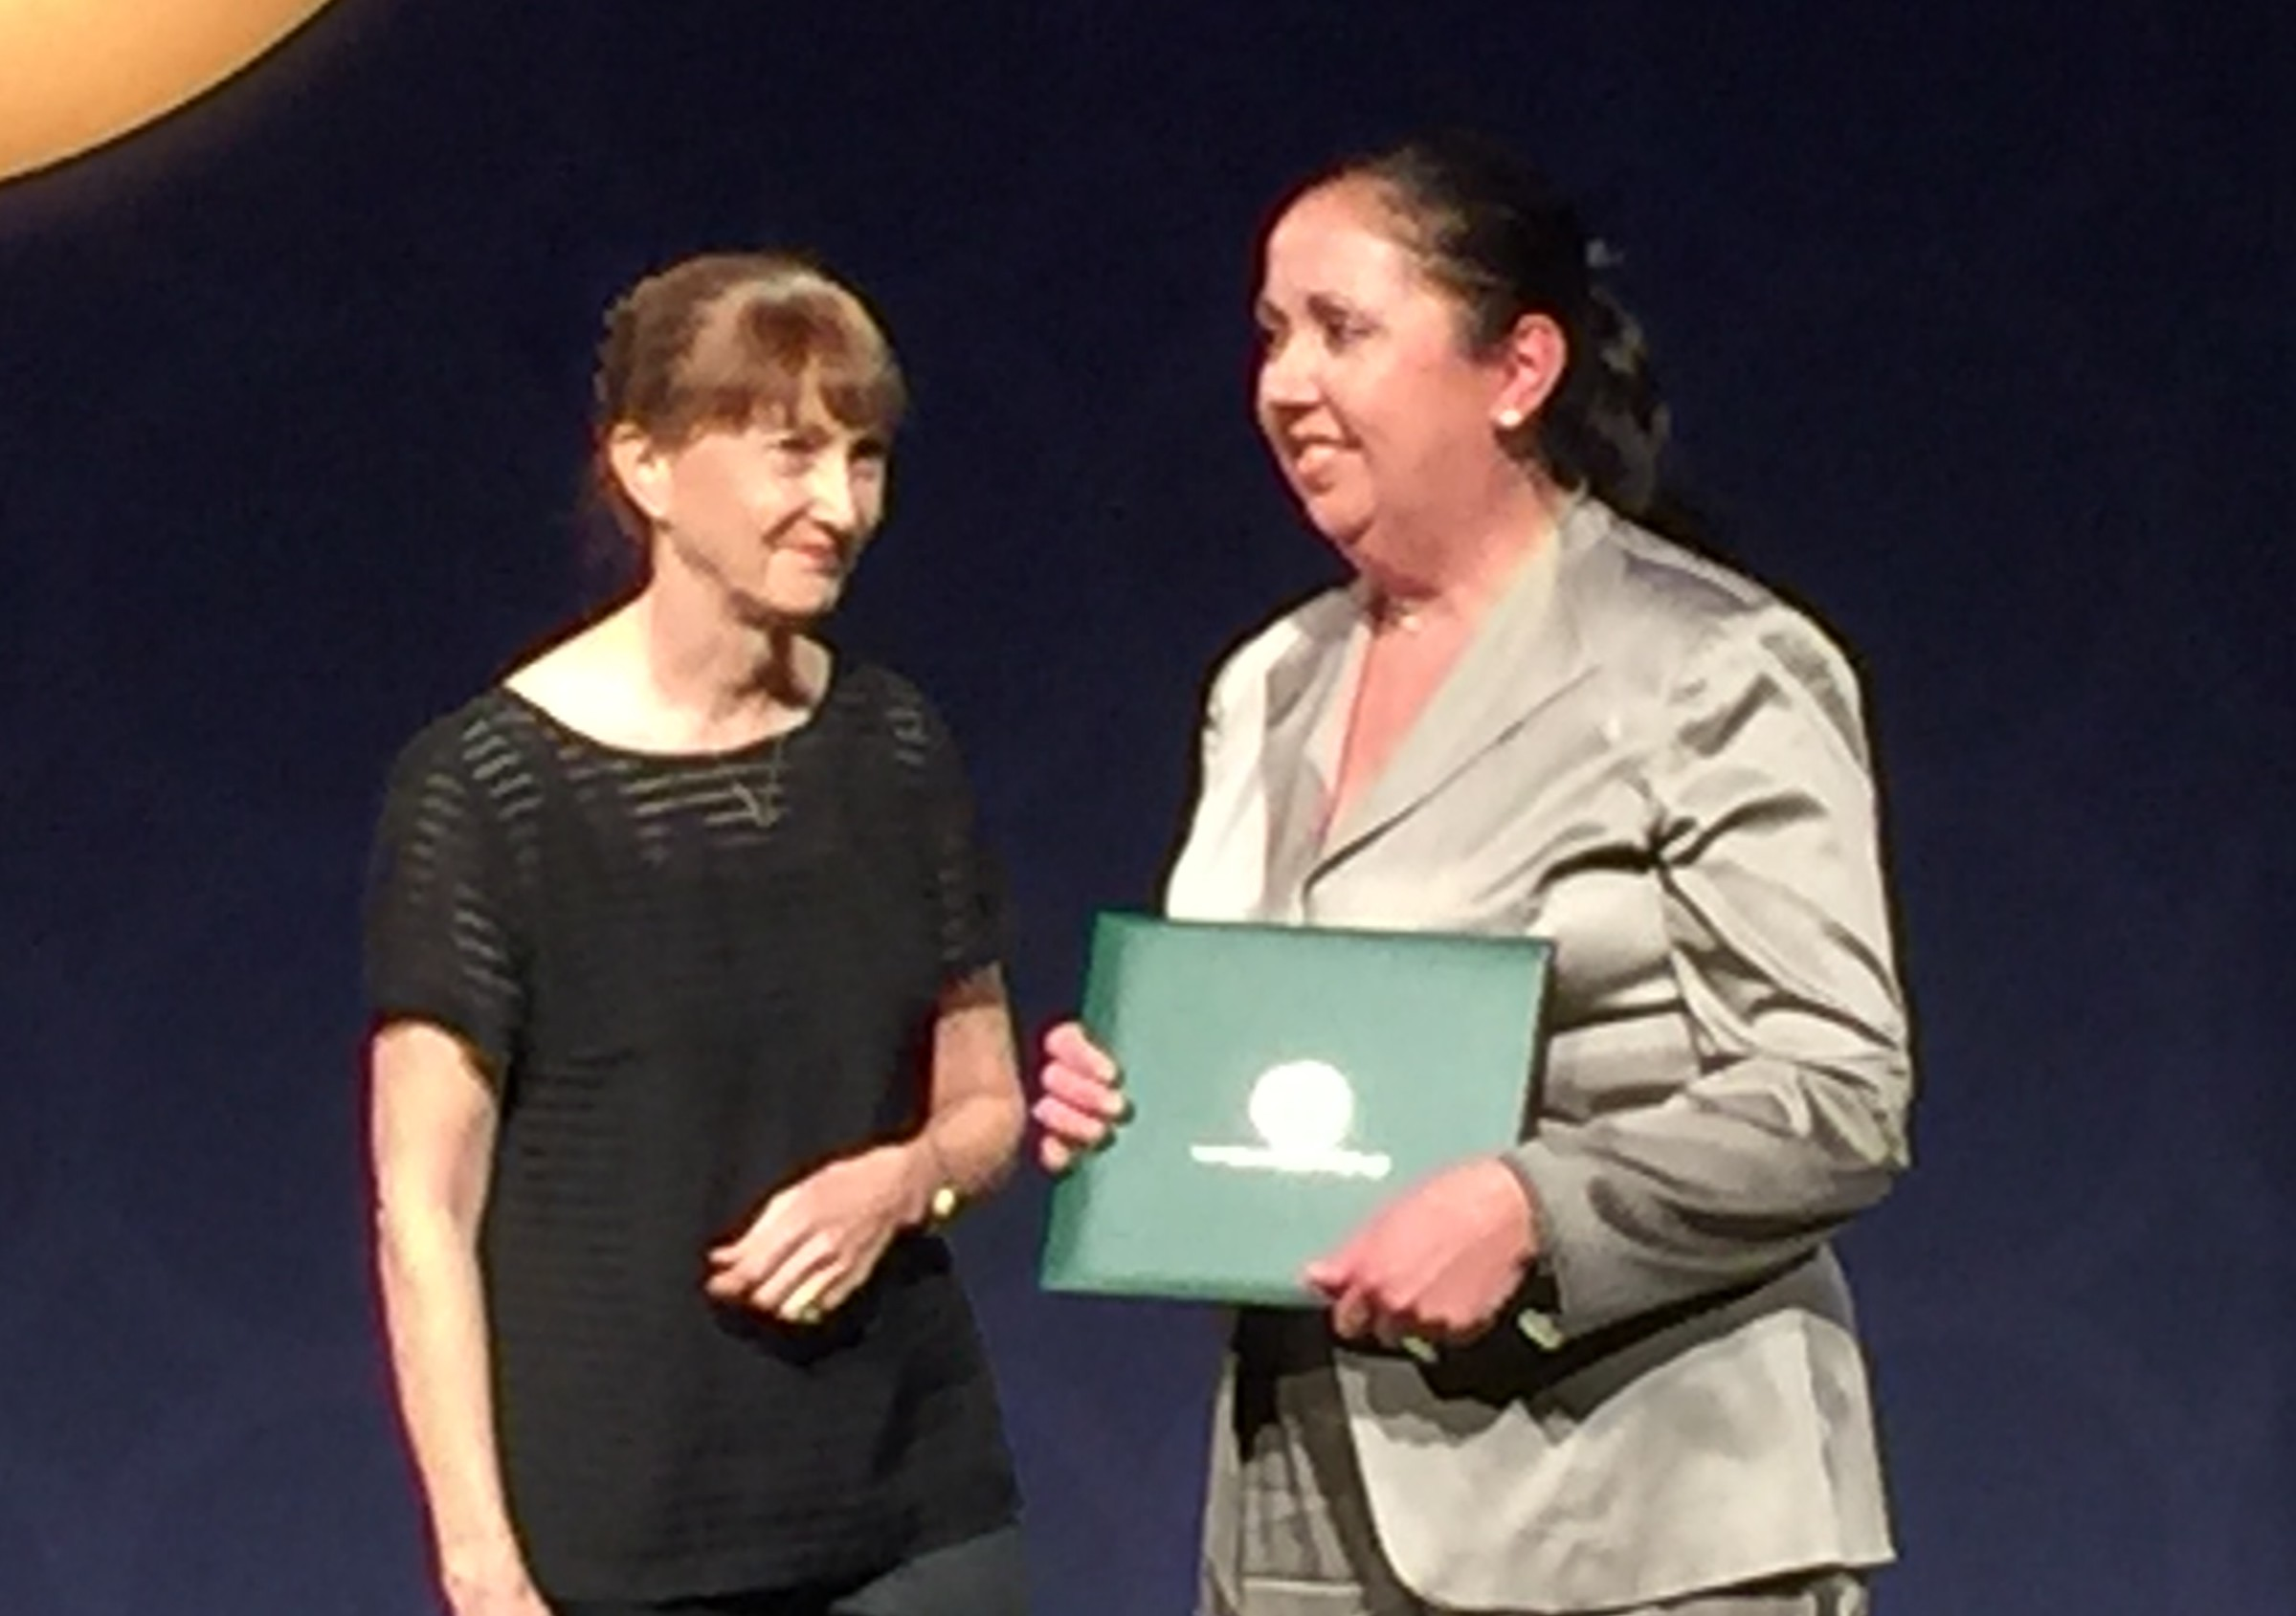 Jackie Somerville (at right) at the induction ceremony